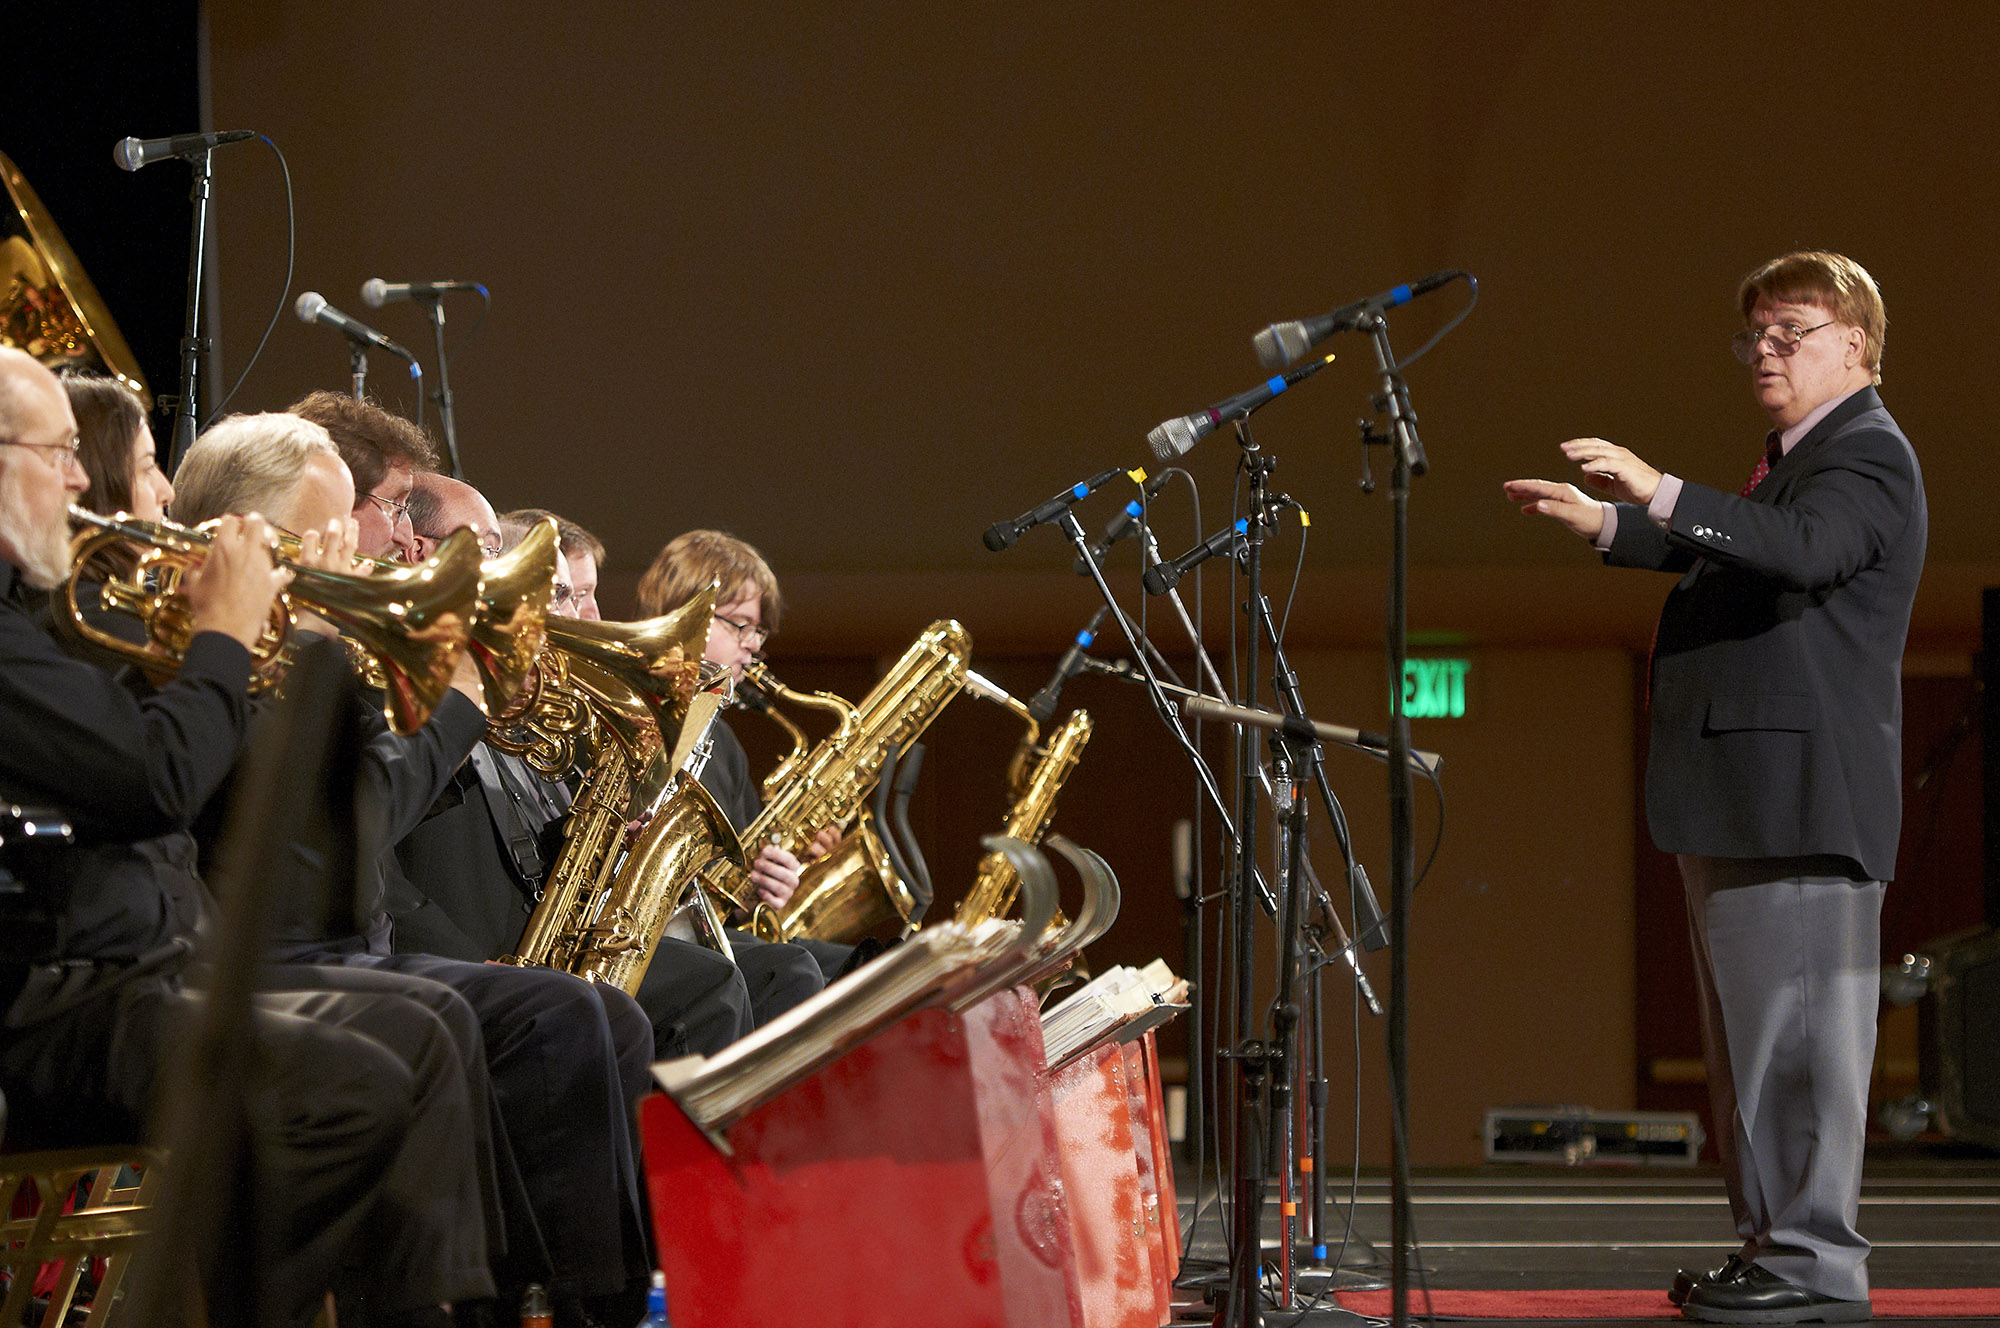 Joel Kaye (right) will conduct the Edmond Jazz Orchestra at two special Stan Kenton tribute performances at the UCO Jazz Lab Jan. 24 and 25.